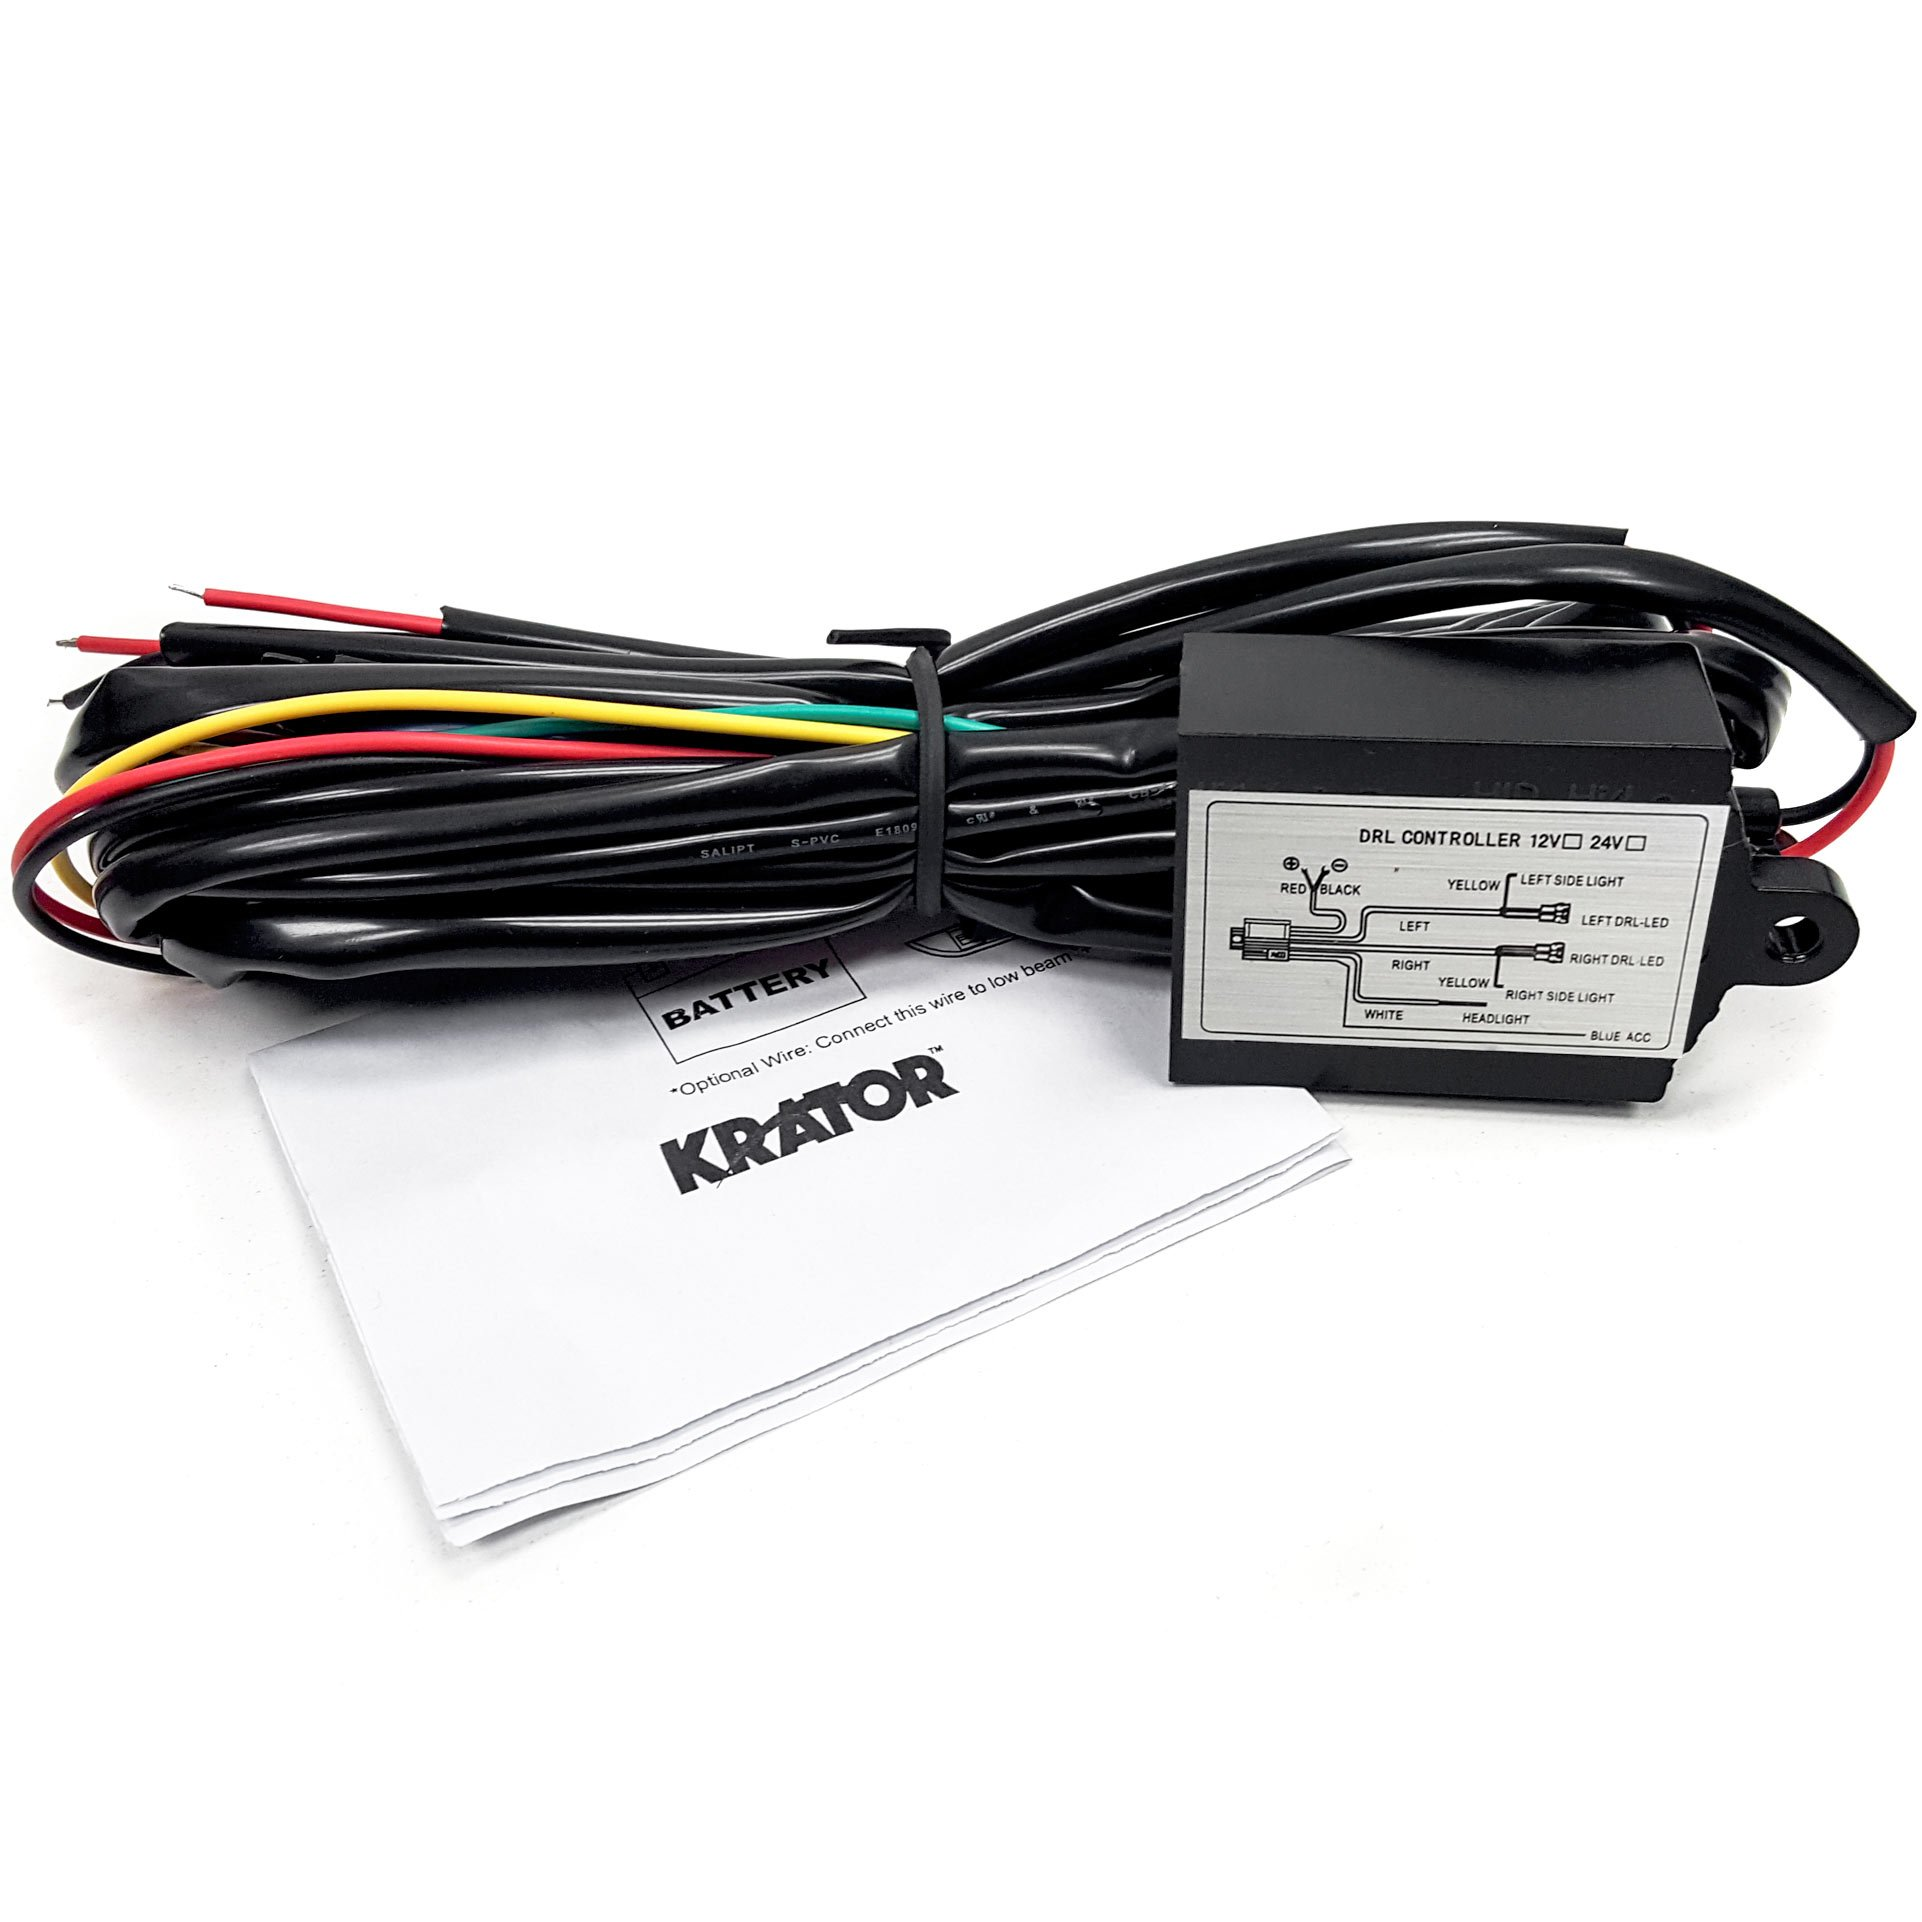 12-18V Auto Car LED Daytime Running Light Controller LED On//Off Fog Light Switch Controller Car Accessories Keenso DRL Controller